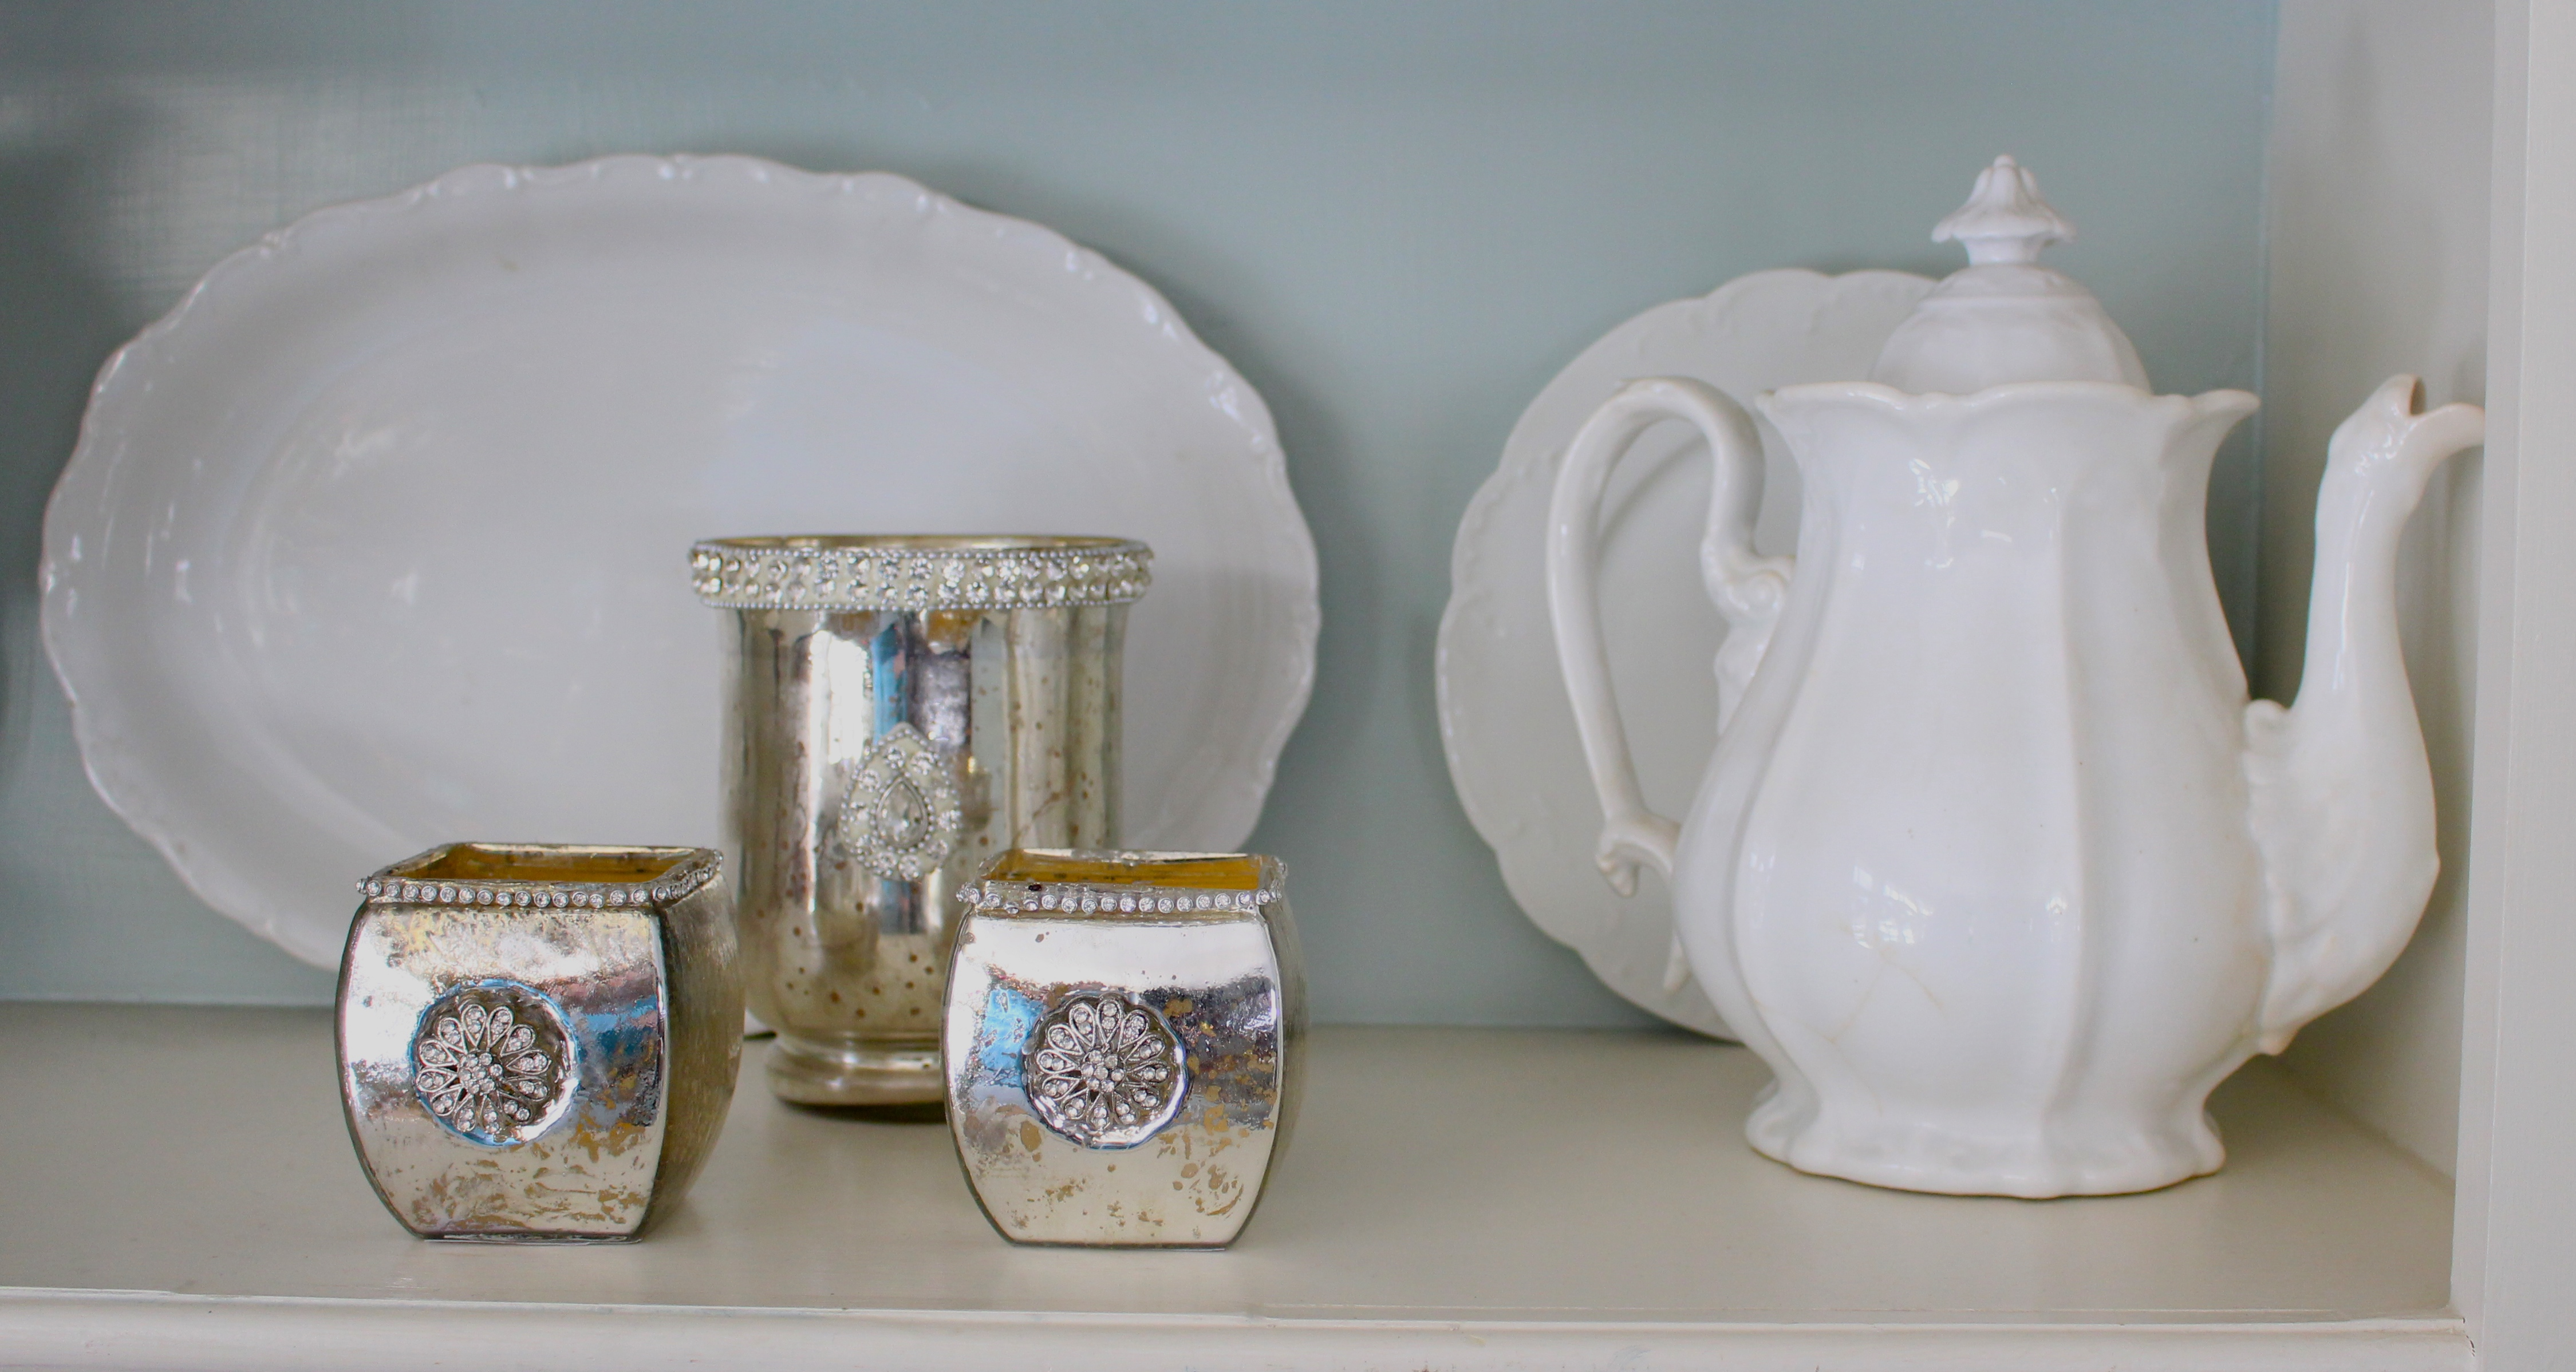 Decorating with vintage ironstone and silver. & Decorating with Vintage Ironstone u0026 Silver - Vintage American Home